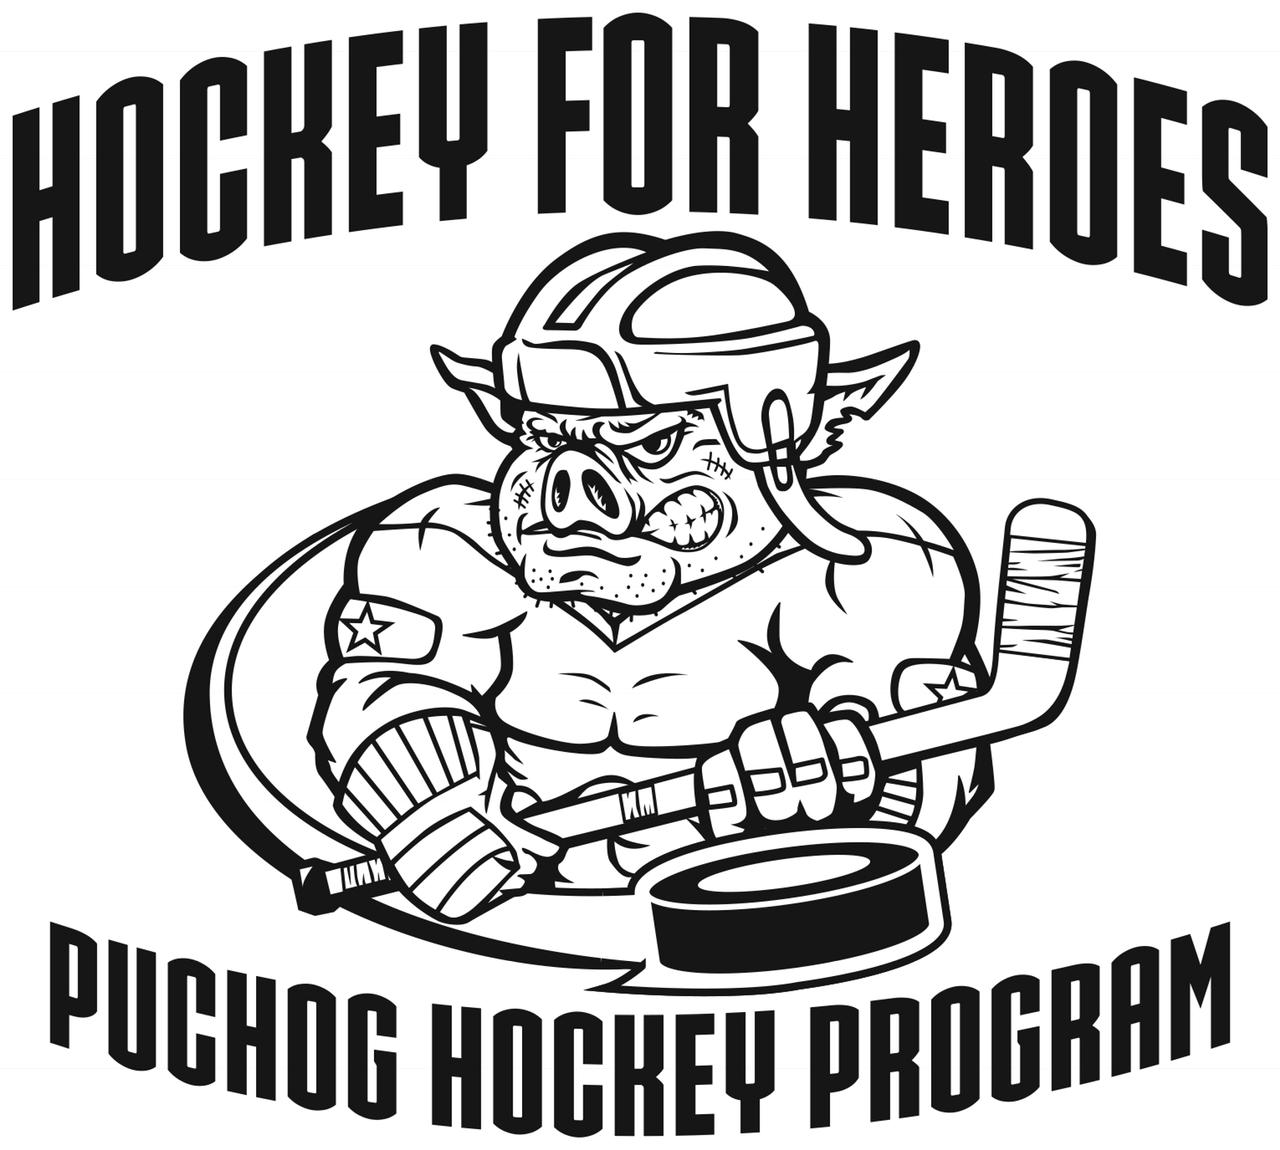 Hockey for Heroes